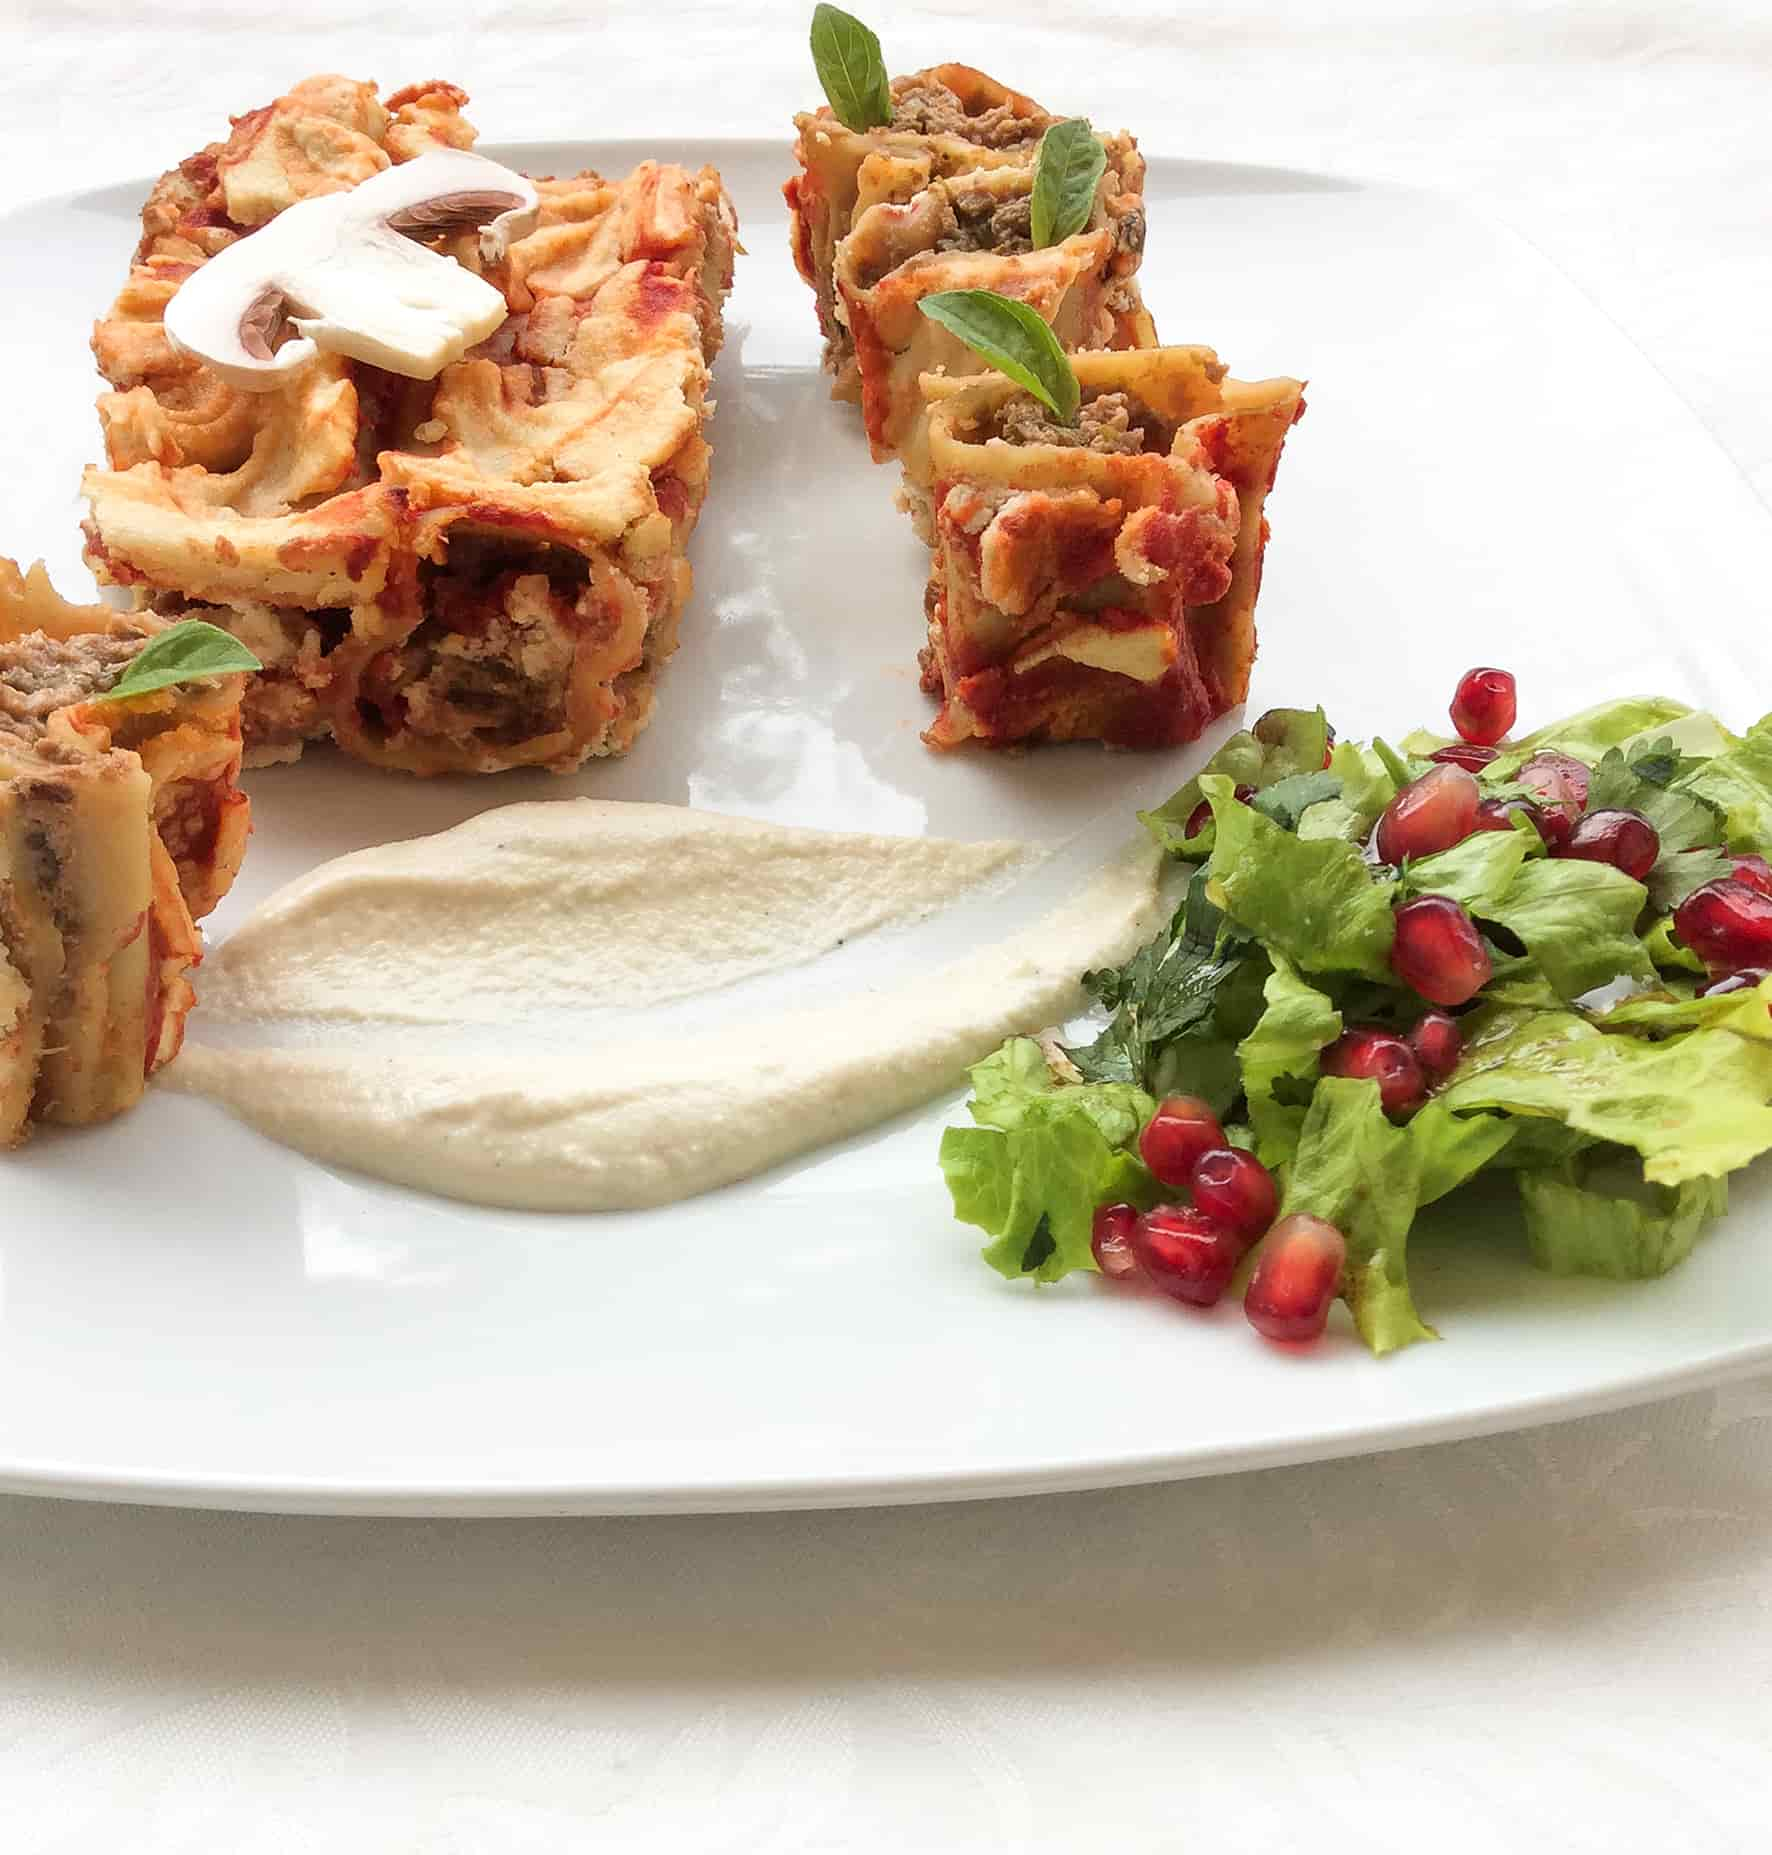 Vegan-cannelloni-mushrooms-almond-bechamel-main-dish-recipes